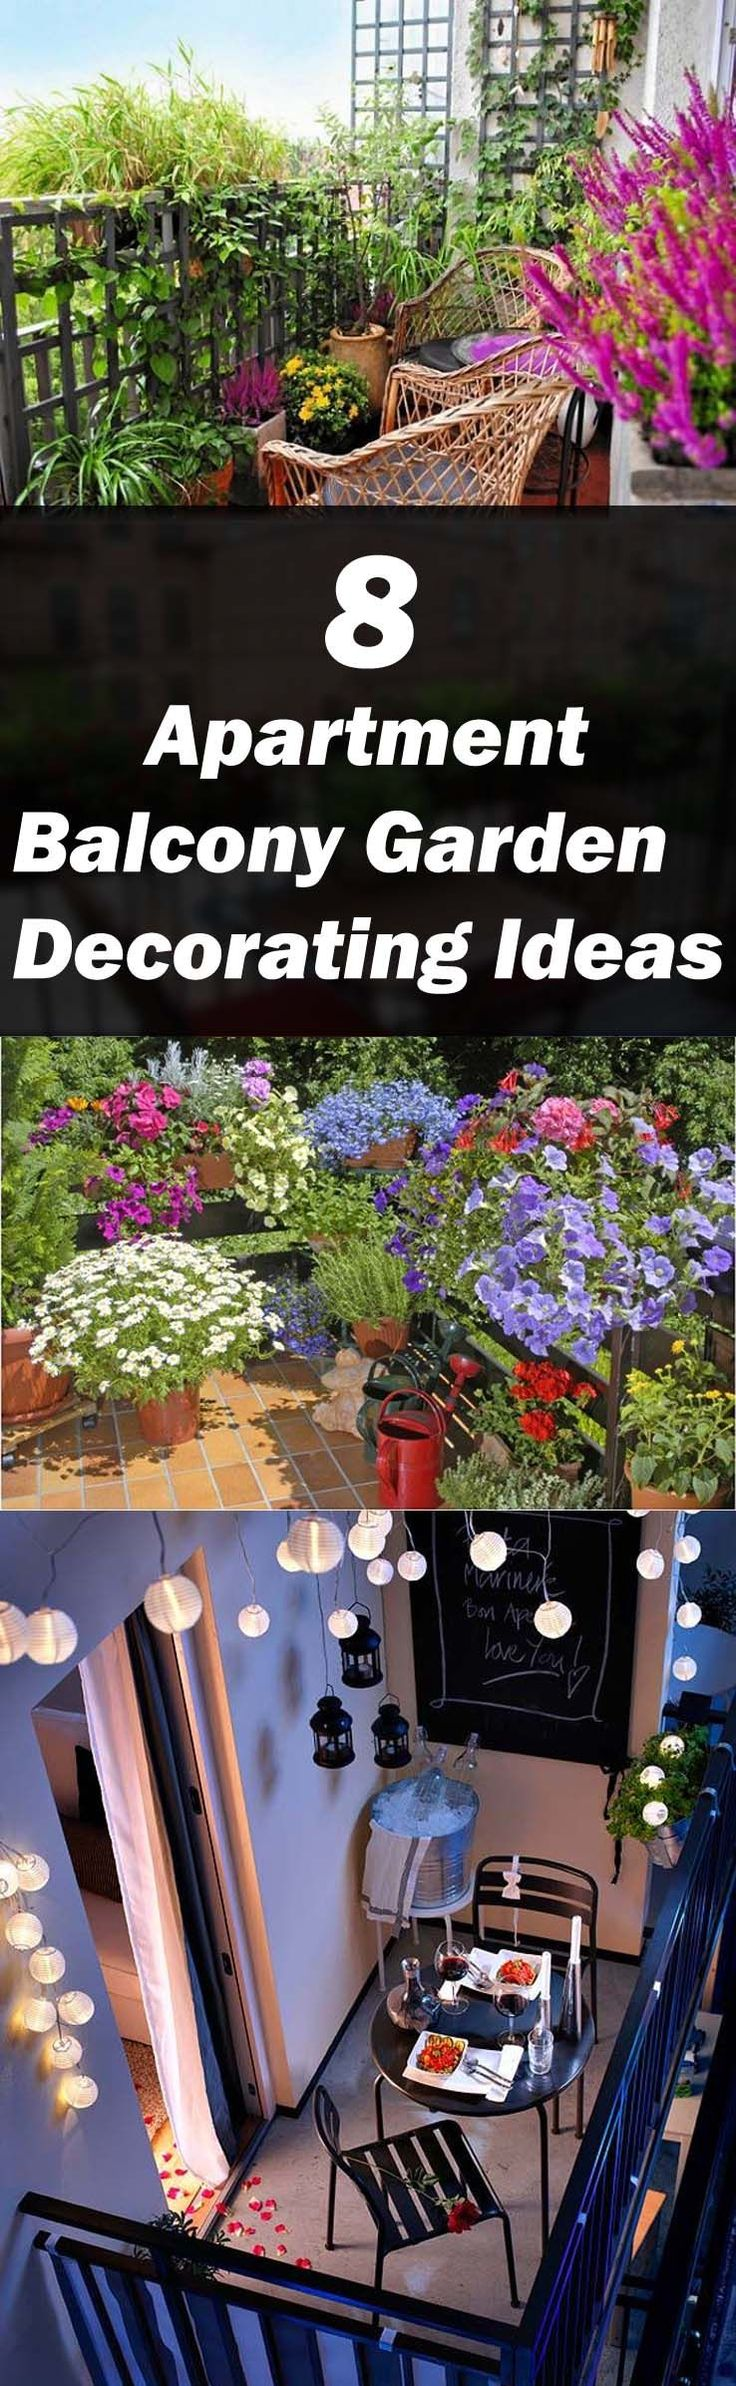 Look at these 8 apartment balcony garden decorating ideas to find out how you can make your balcony the most comfortable space. #balconygarden